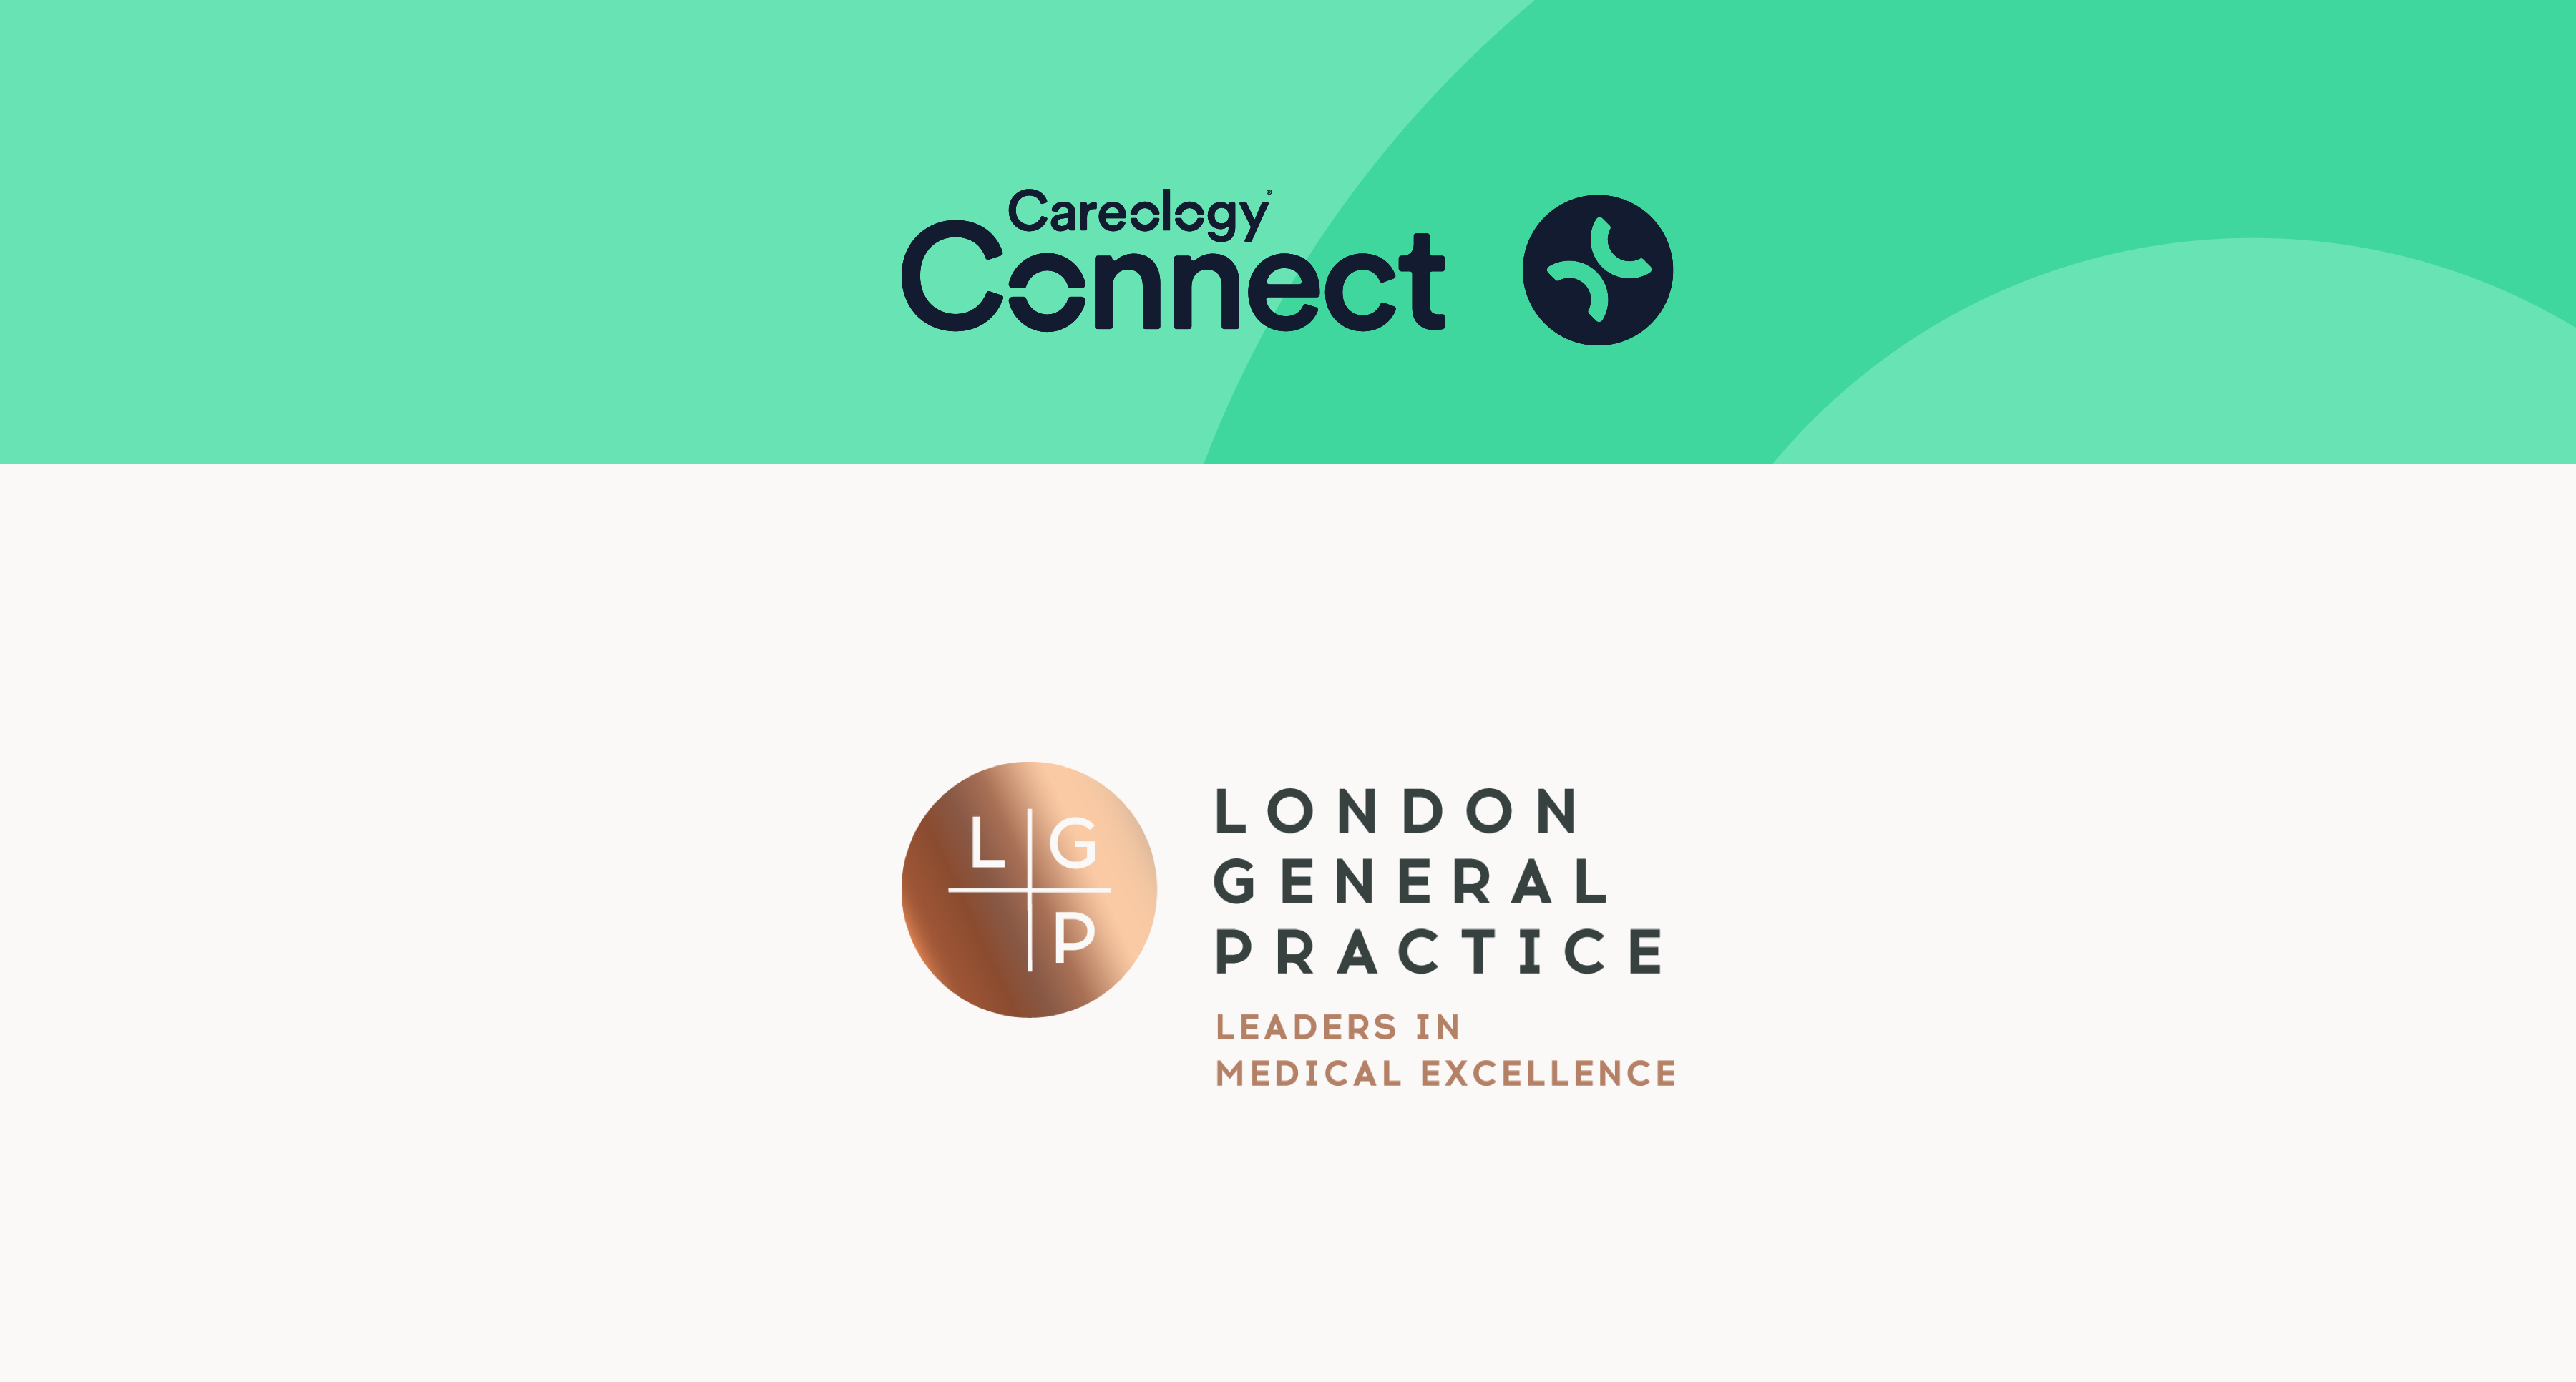 Careology partners with The London General Practice  to launch Careology Connect for COVID-19 cases